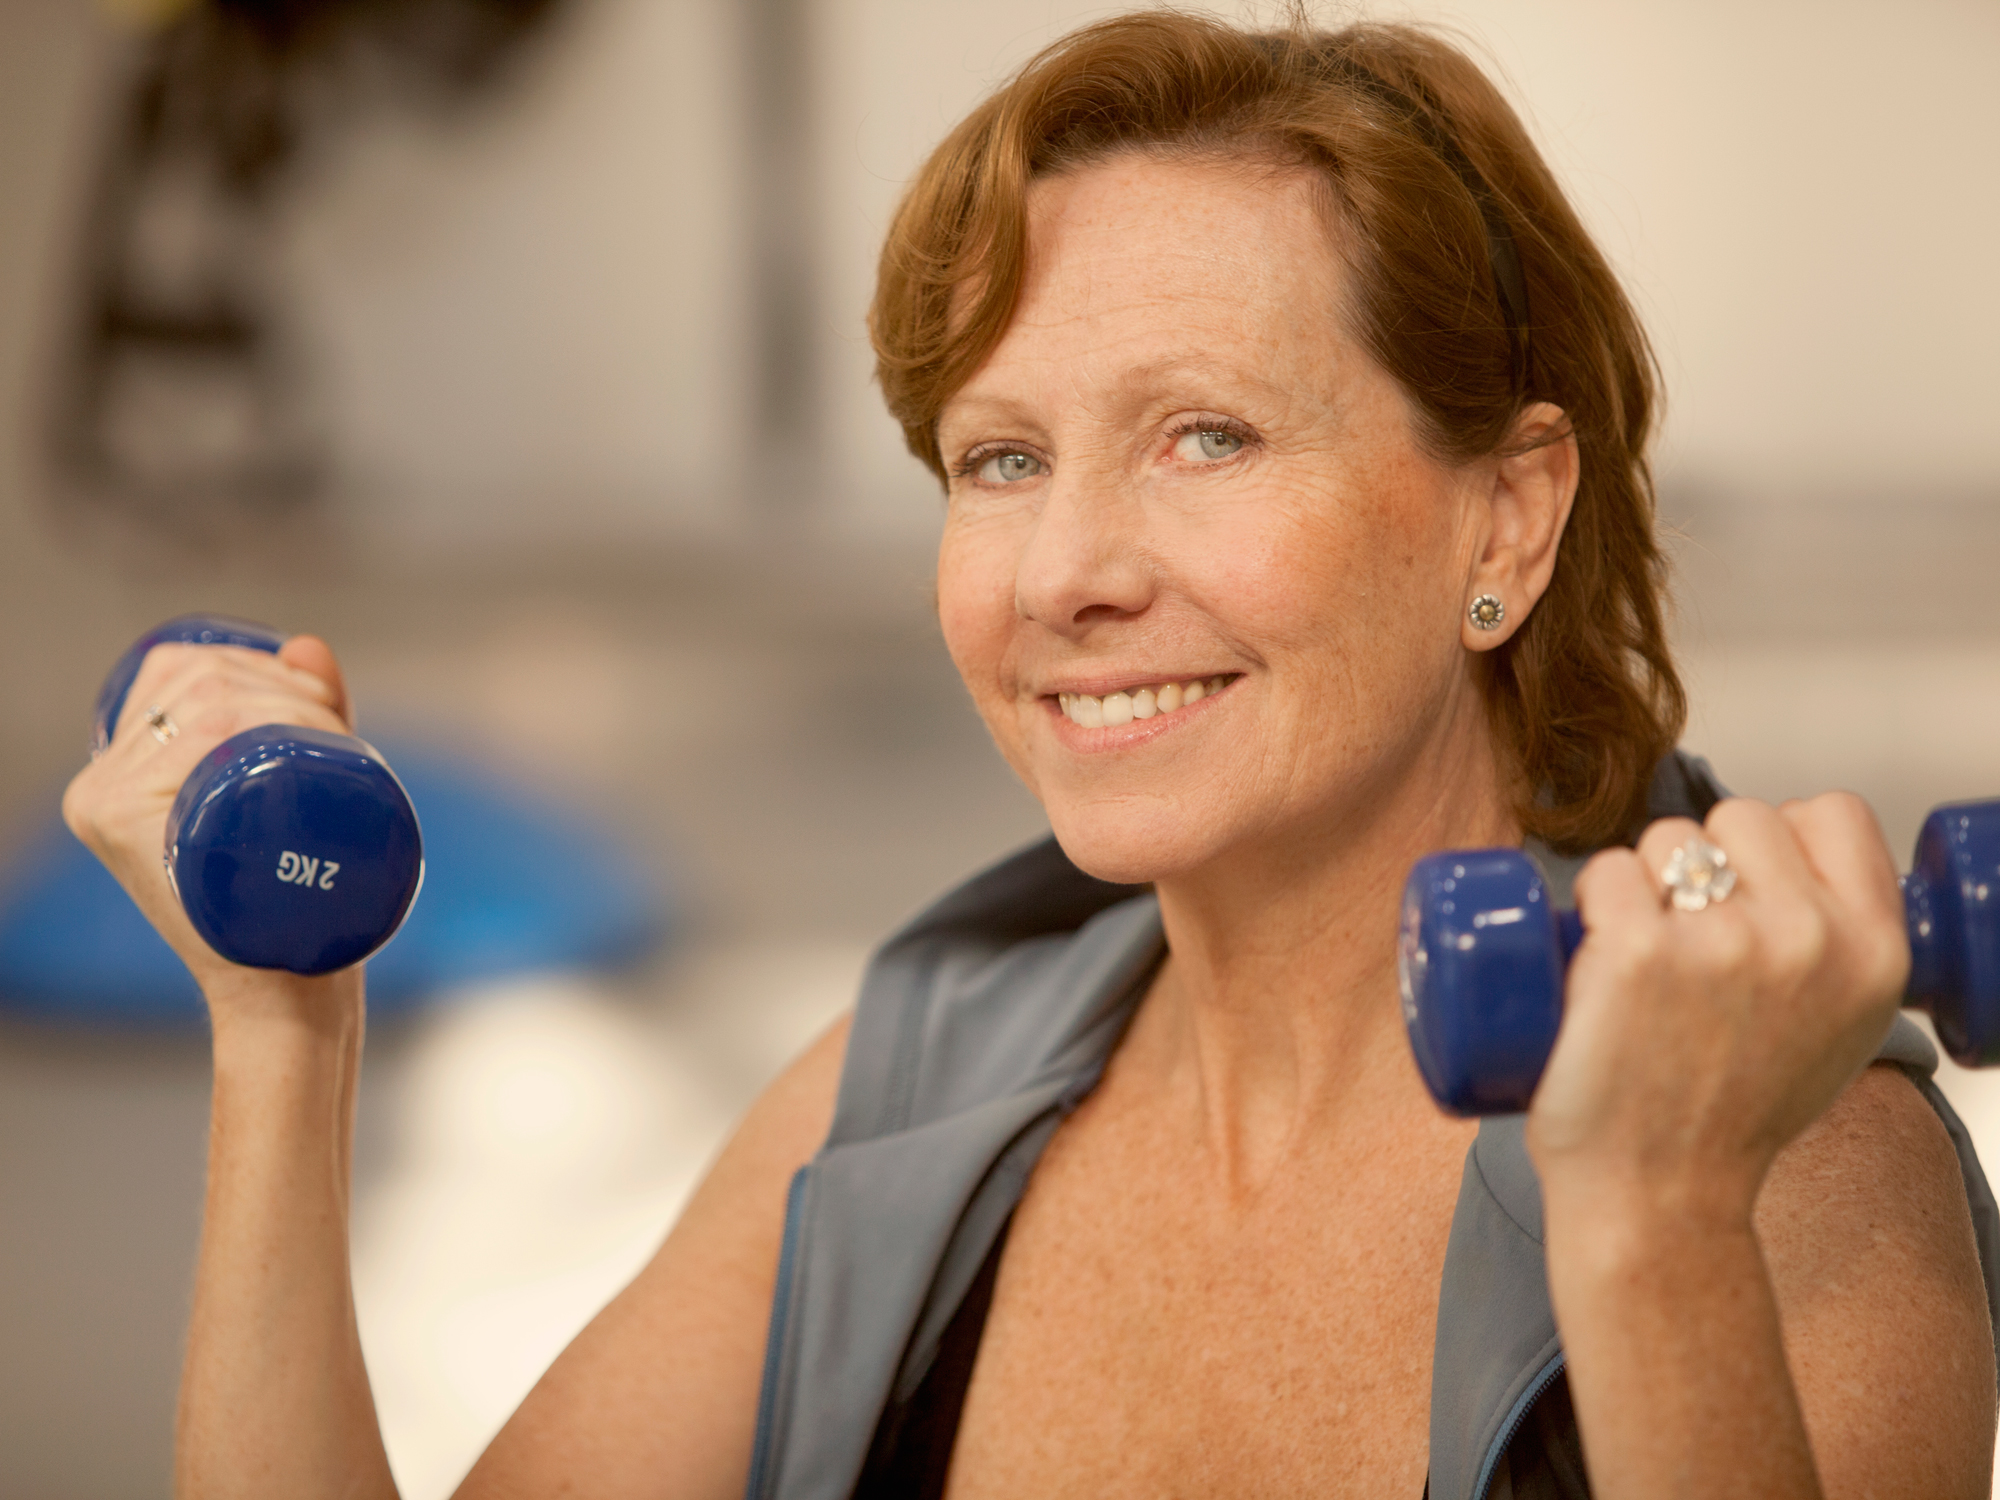 How to get heavy-weight results lifting light weights